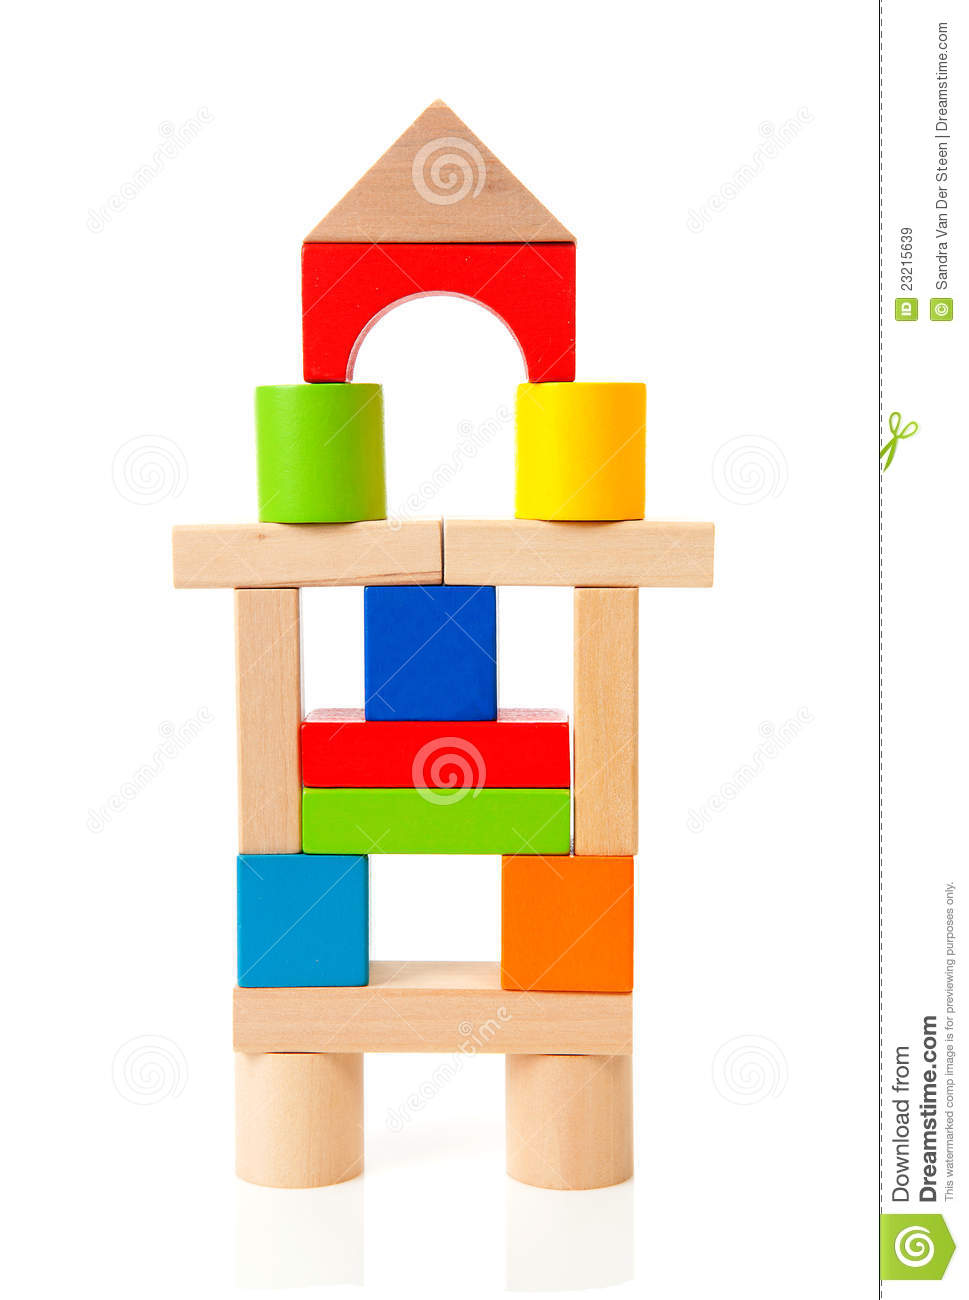 Wooden building blocks clipart png free download House Made Out Of Colorful Wooden Building Blocks Royalty Free ... png free download